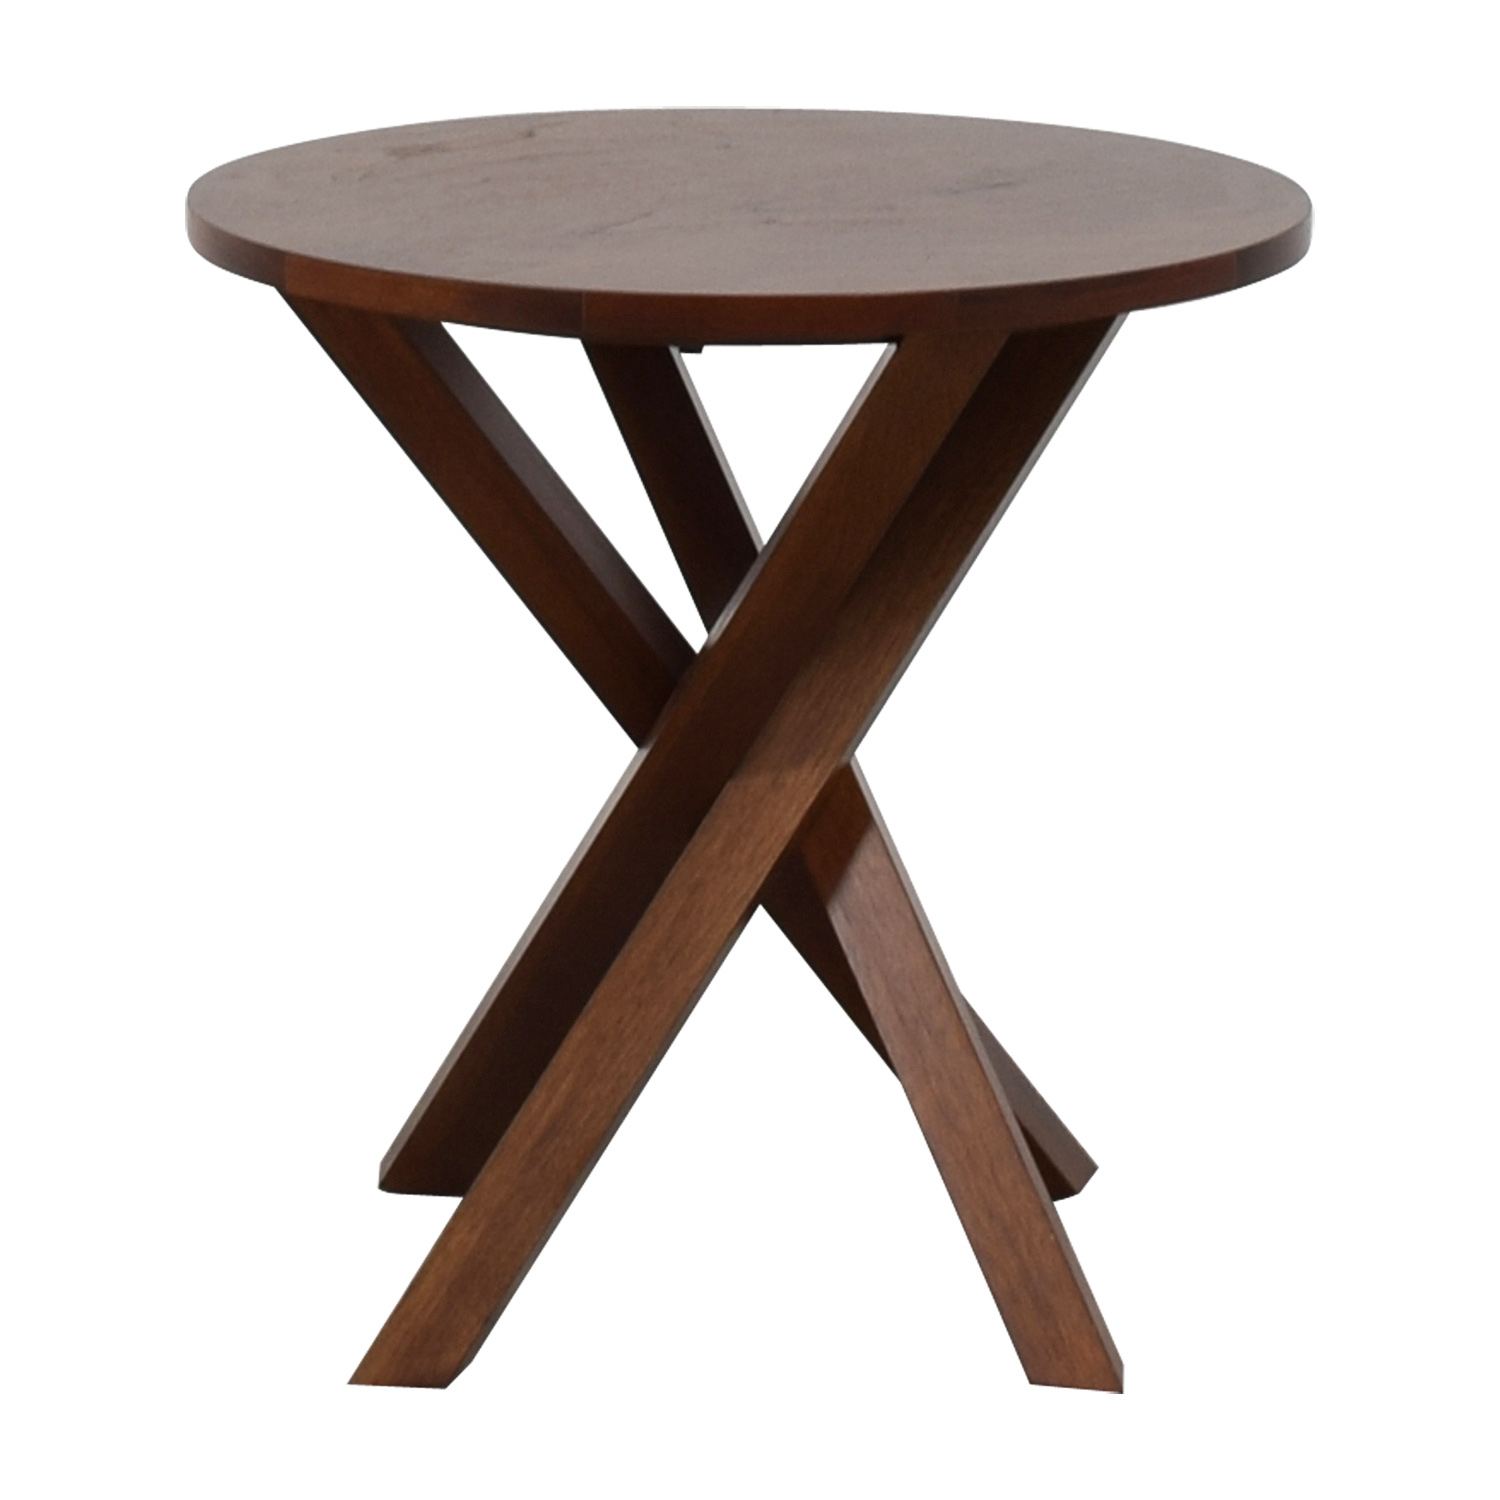 Crate & Barrel Round Wood End Table / Tables